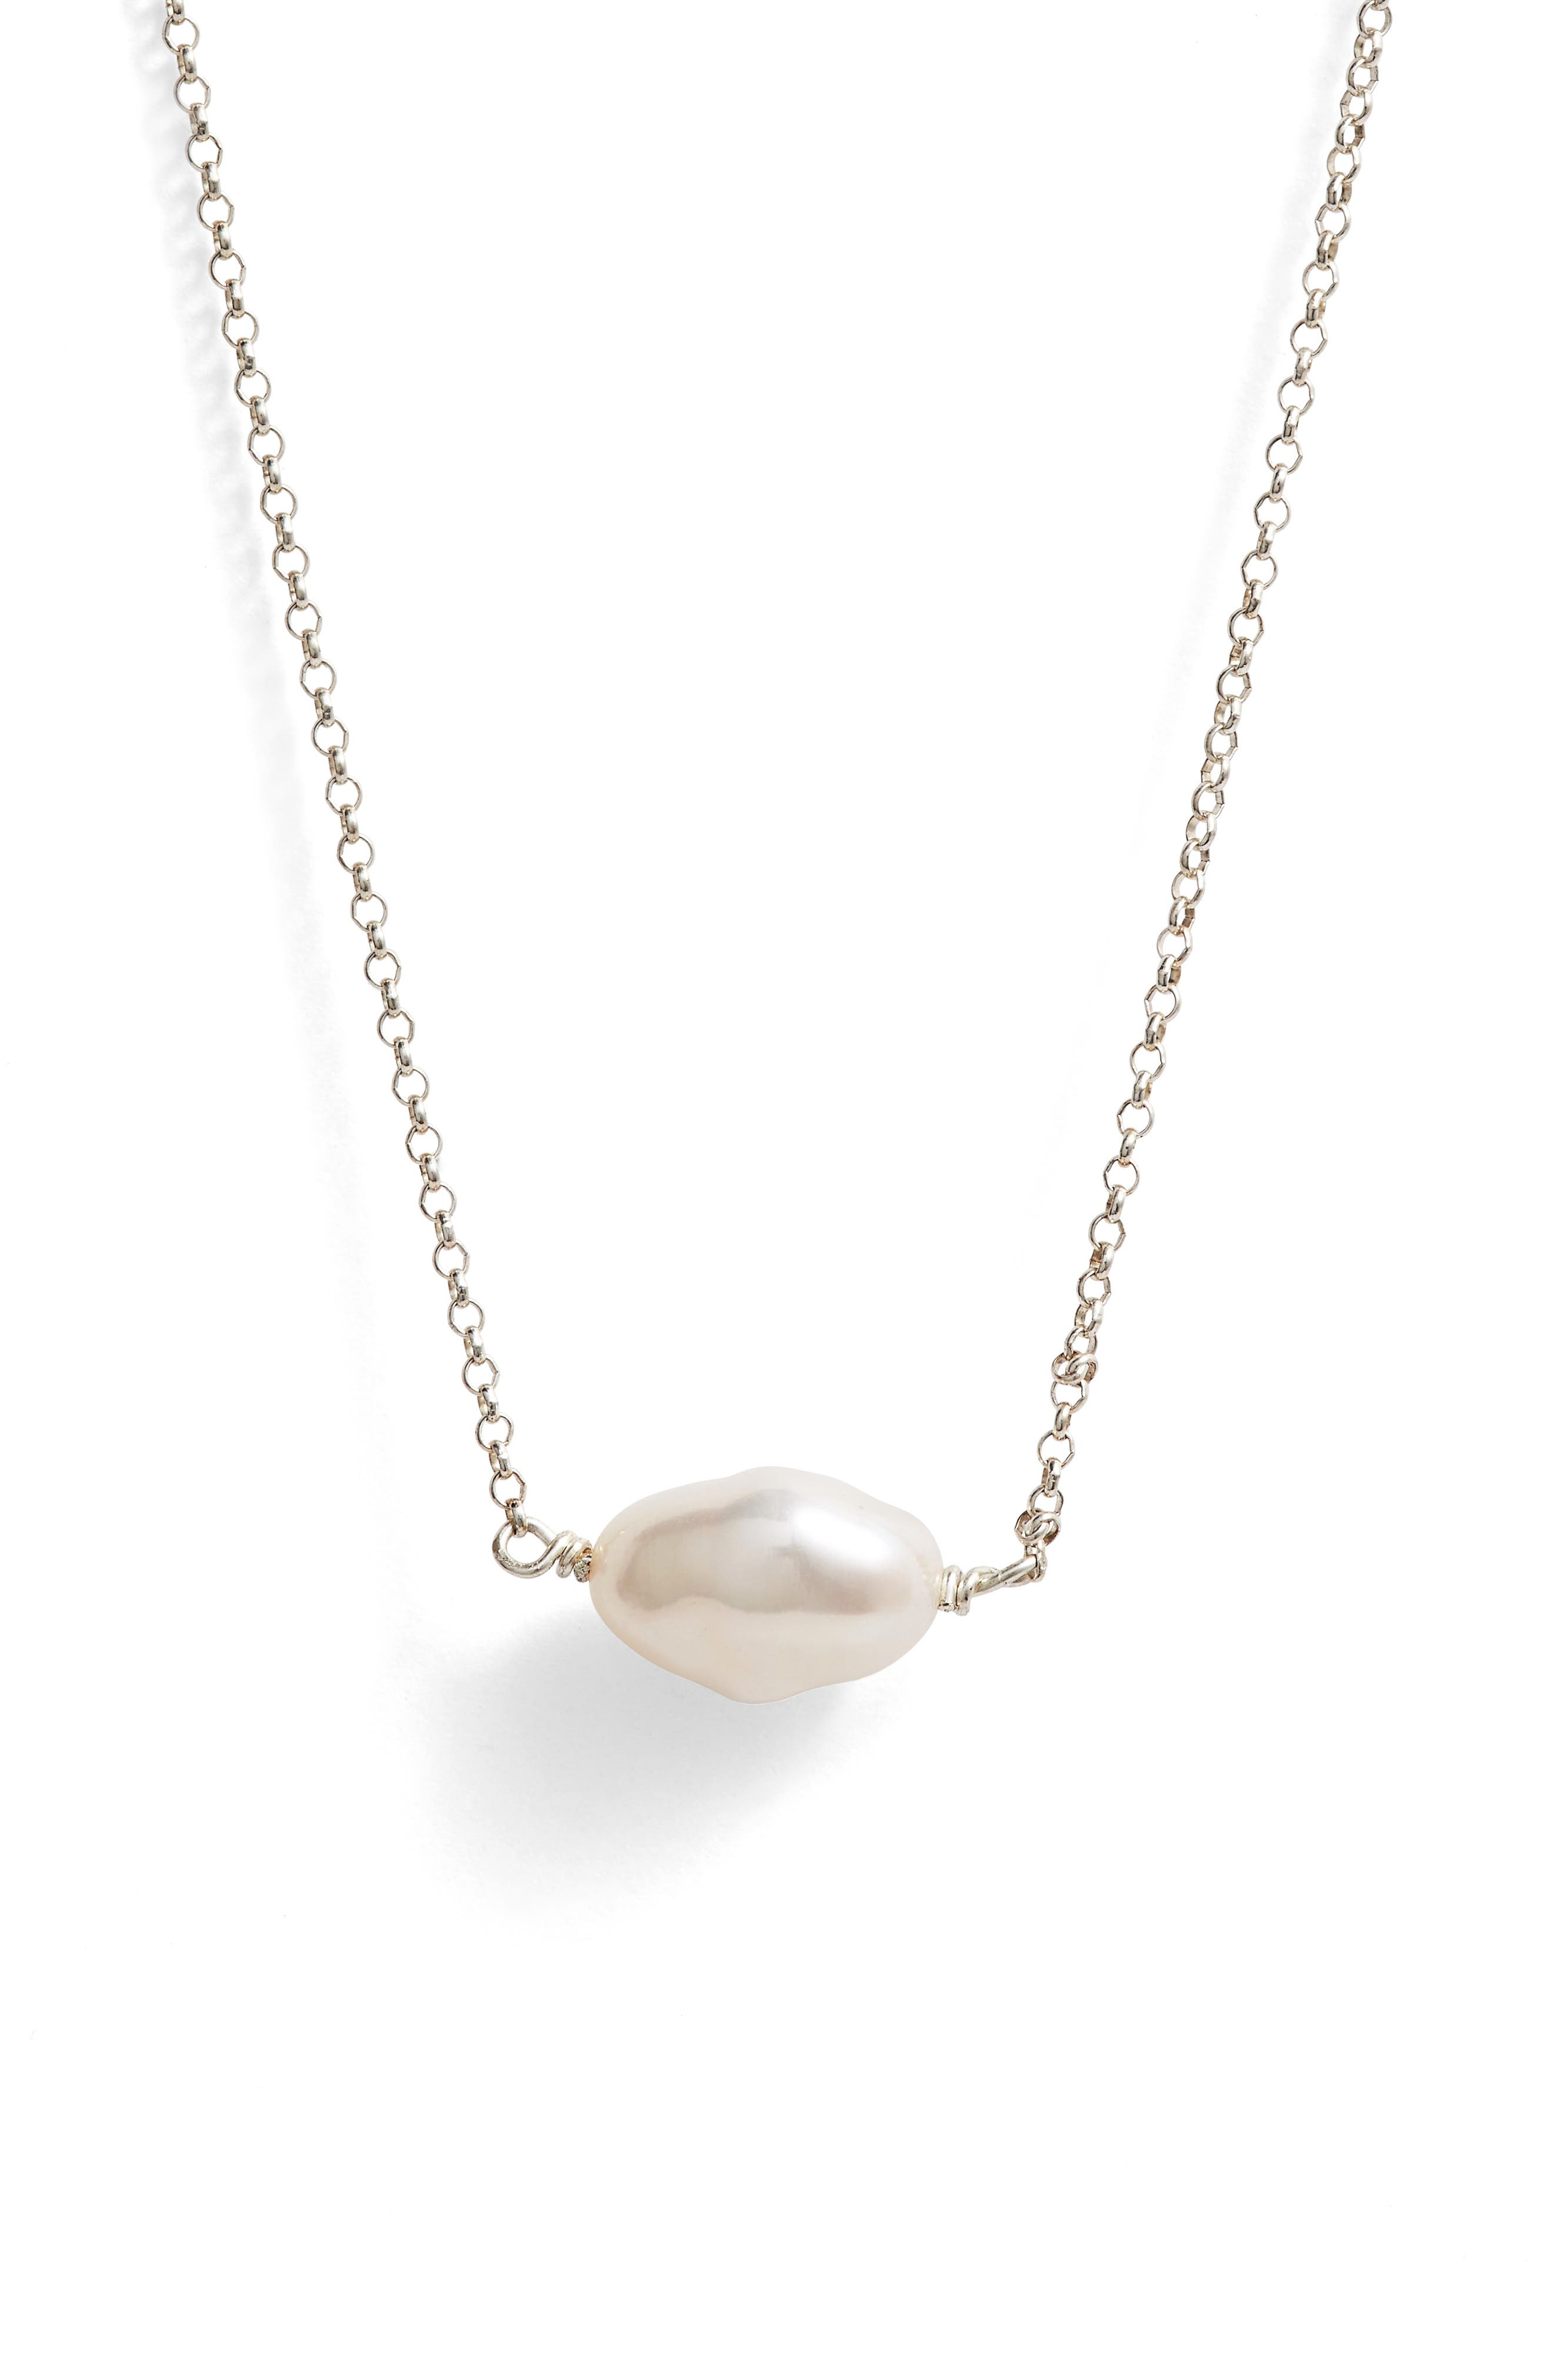 Keshi Cultured Pearl Necklace,                         Main,                         color, STERLING WHITE PEARL